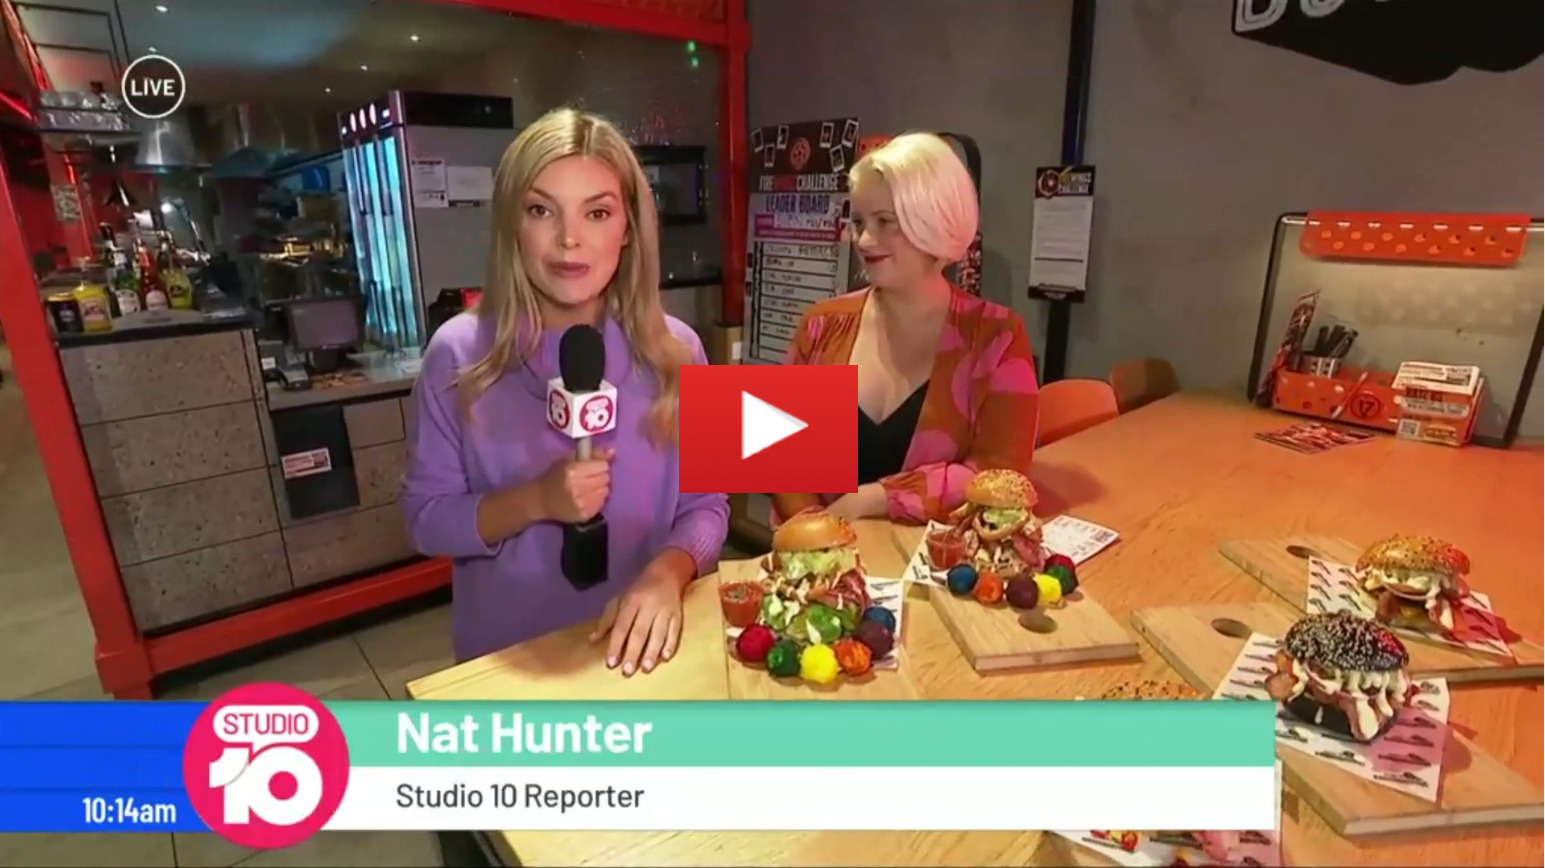 Chrissie Maus, CSPA General Manager, speaks to Nat Hunter and the Studio 10 team about the Chapel Champions Awards which have brought with them some pretty crazy burgers.  Cal Stubbs AKA HulkSmashFood is gearing up for an Australian burger attempt, aiming to eat a 4.2kg burger with 23 patties.